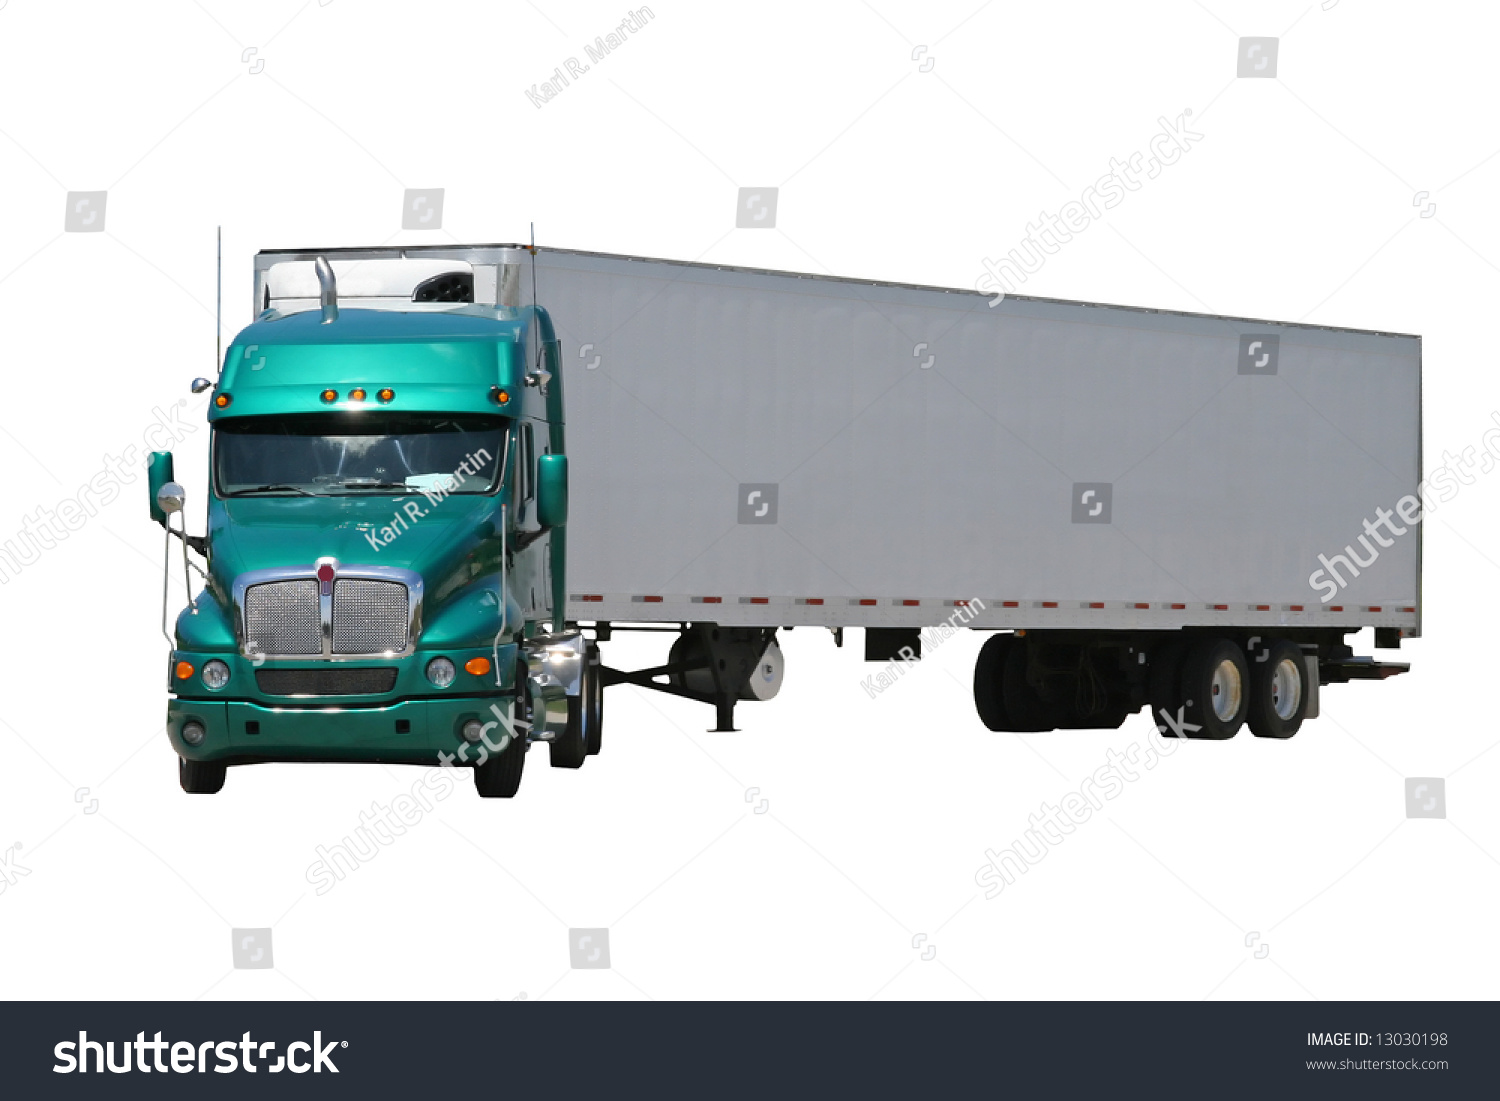 Anatomy Of A Semi Trailer : Isolated green semi tractor trailer turned stock photo